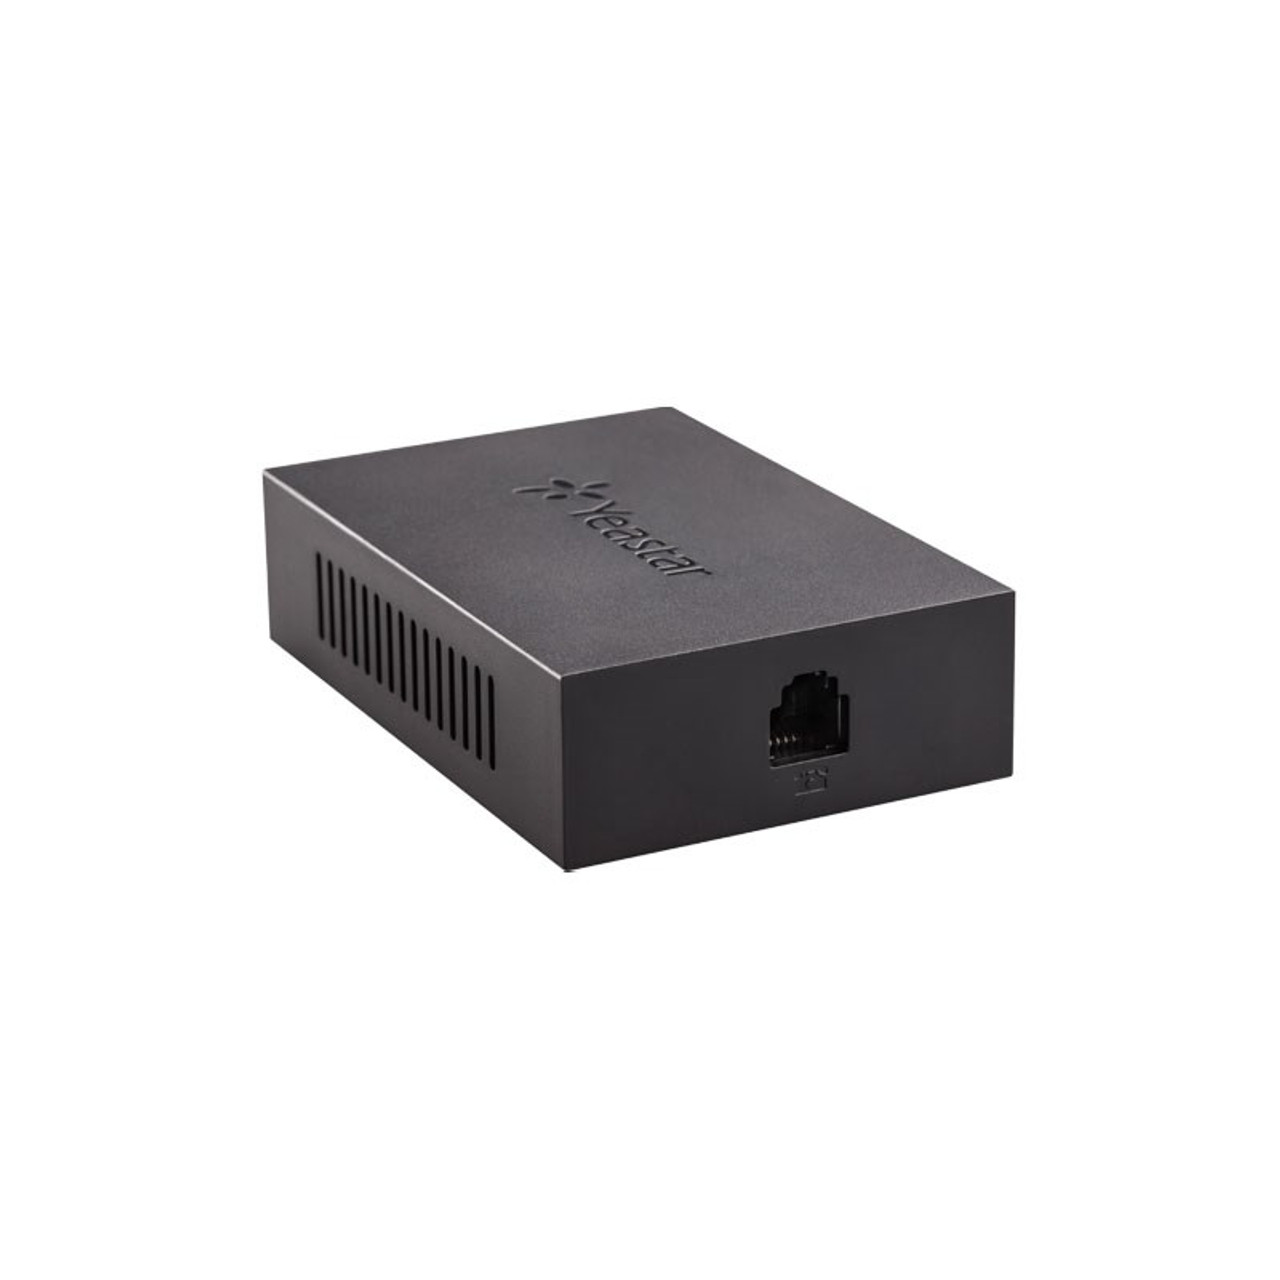 Image for Yeastar TA100 1-Port Analog Telephone Adapter CX Computer Superstore